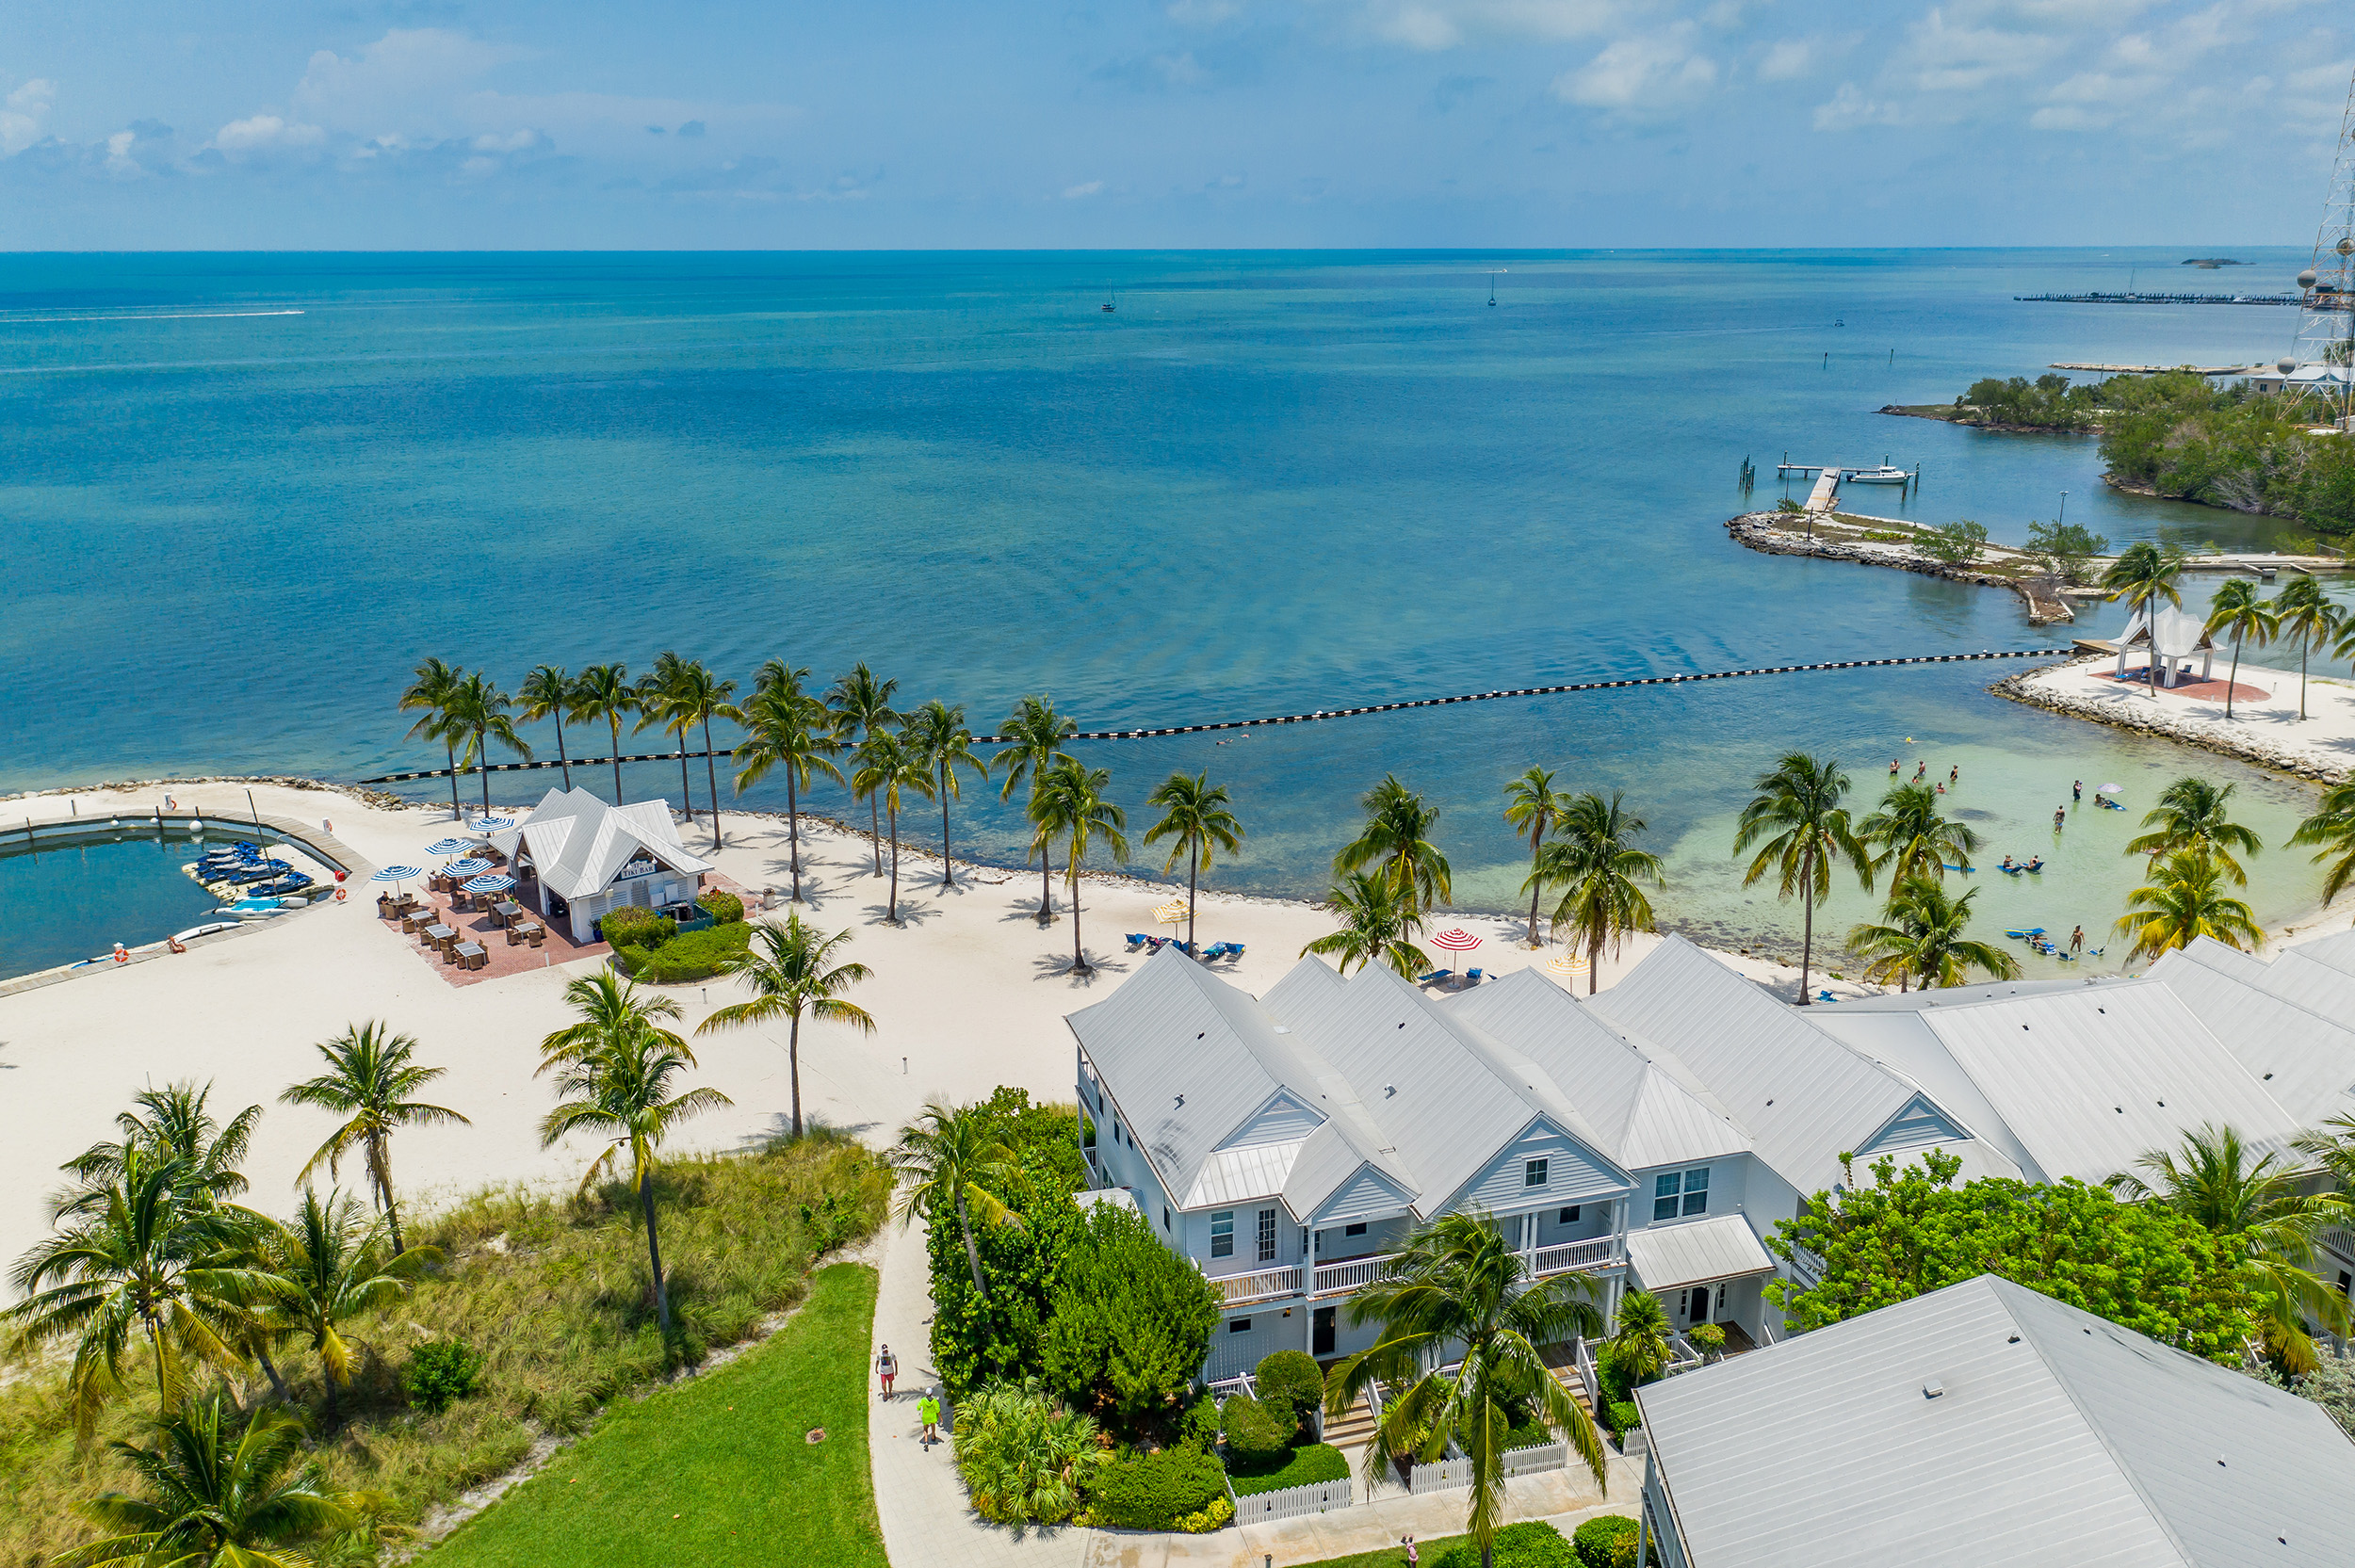 Aerial view of beach houses at Tranquility Bay Resort in the Florida Keys